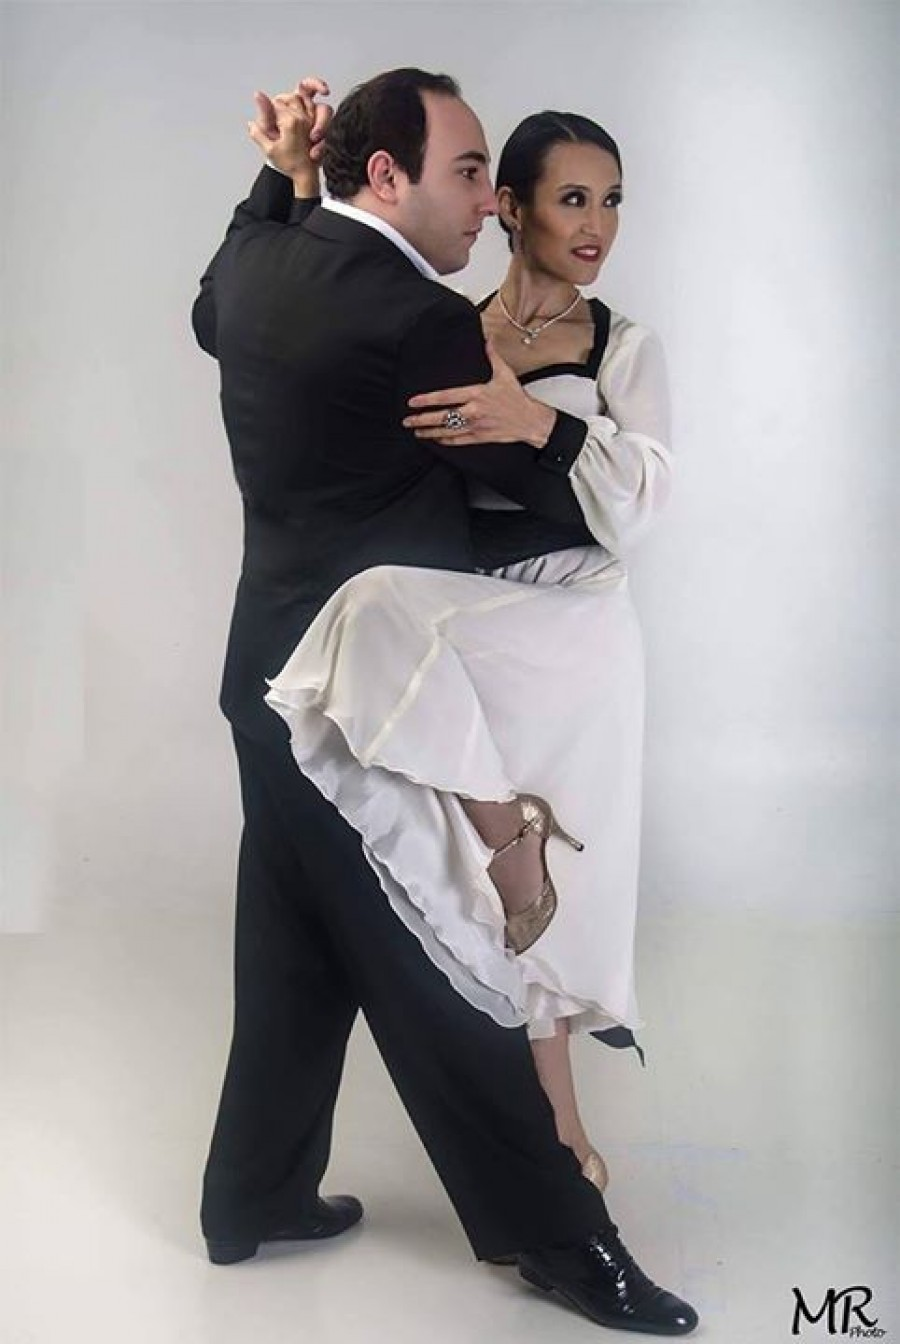 Argentine Tango Workshop with Jose Luis Ferraro and Rika Fuk